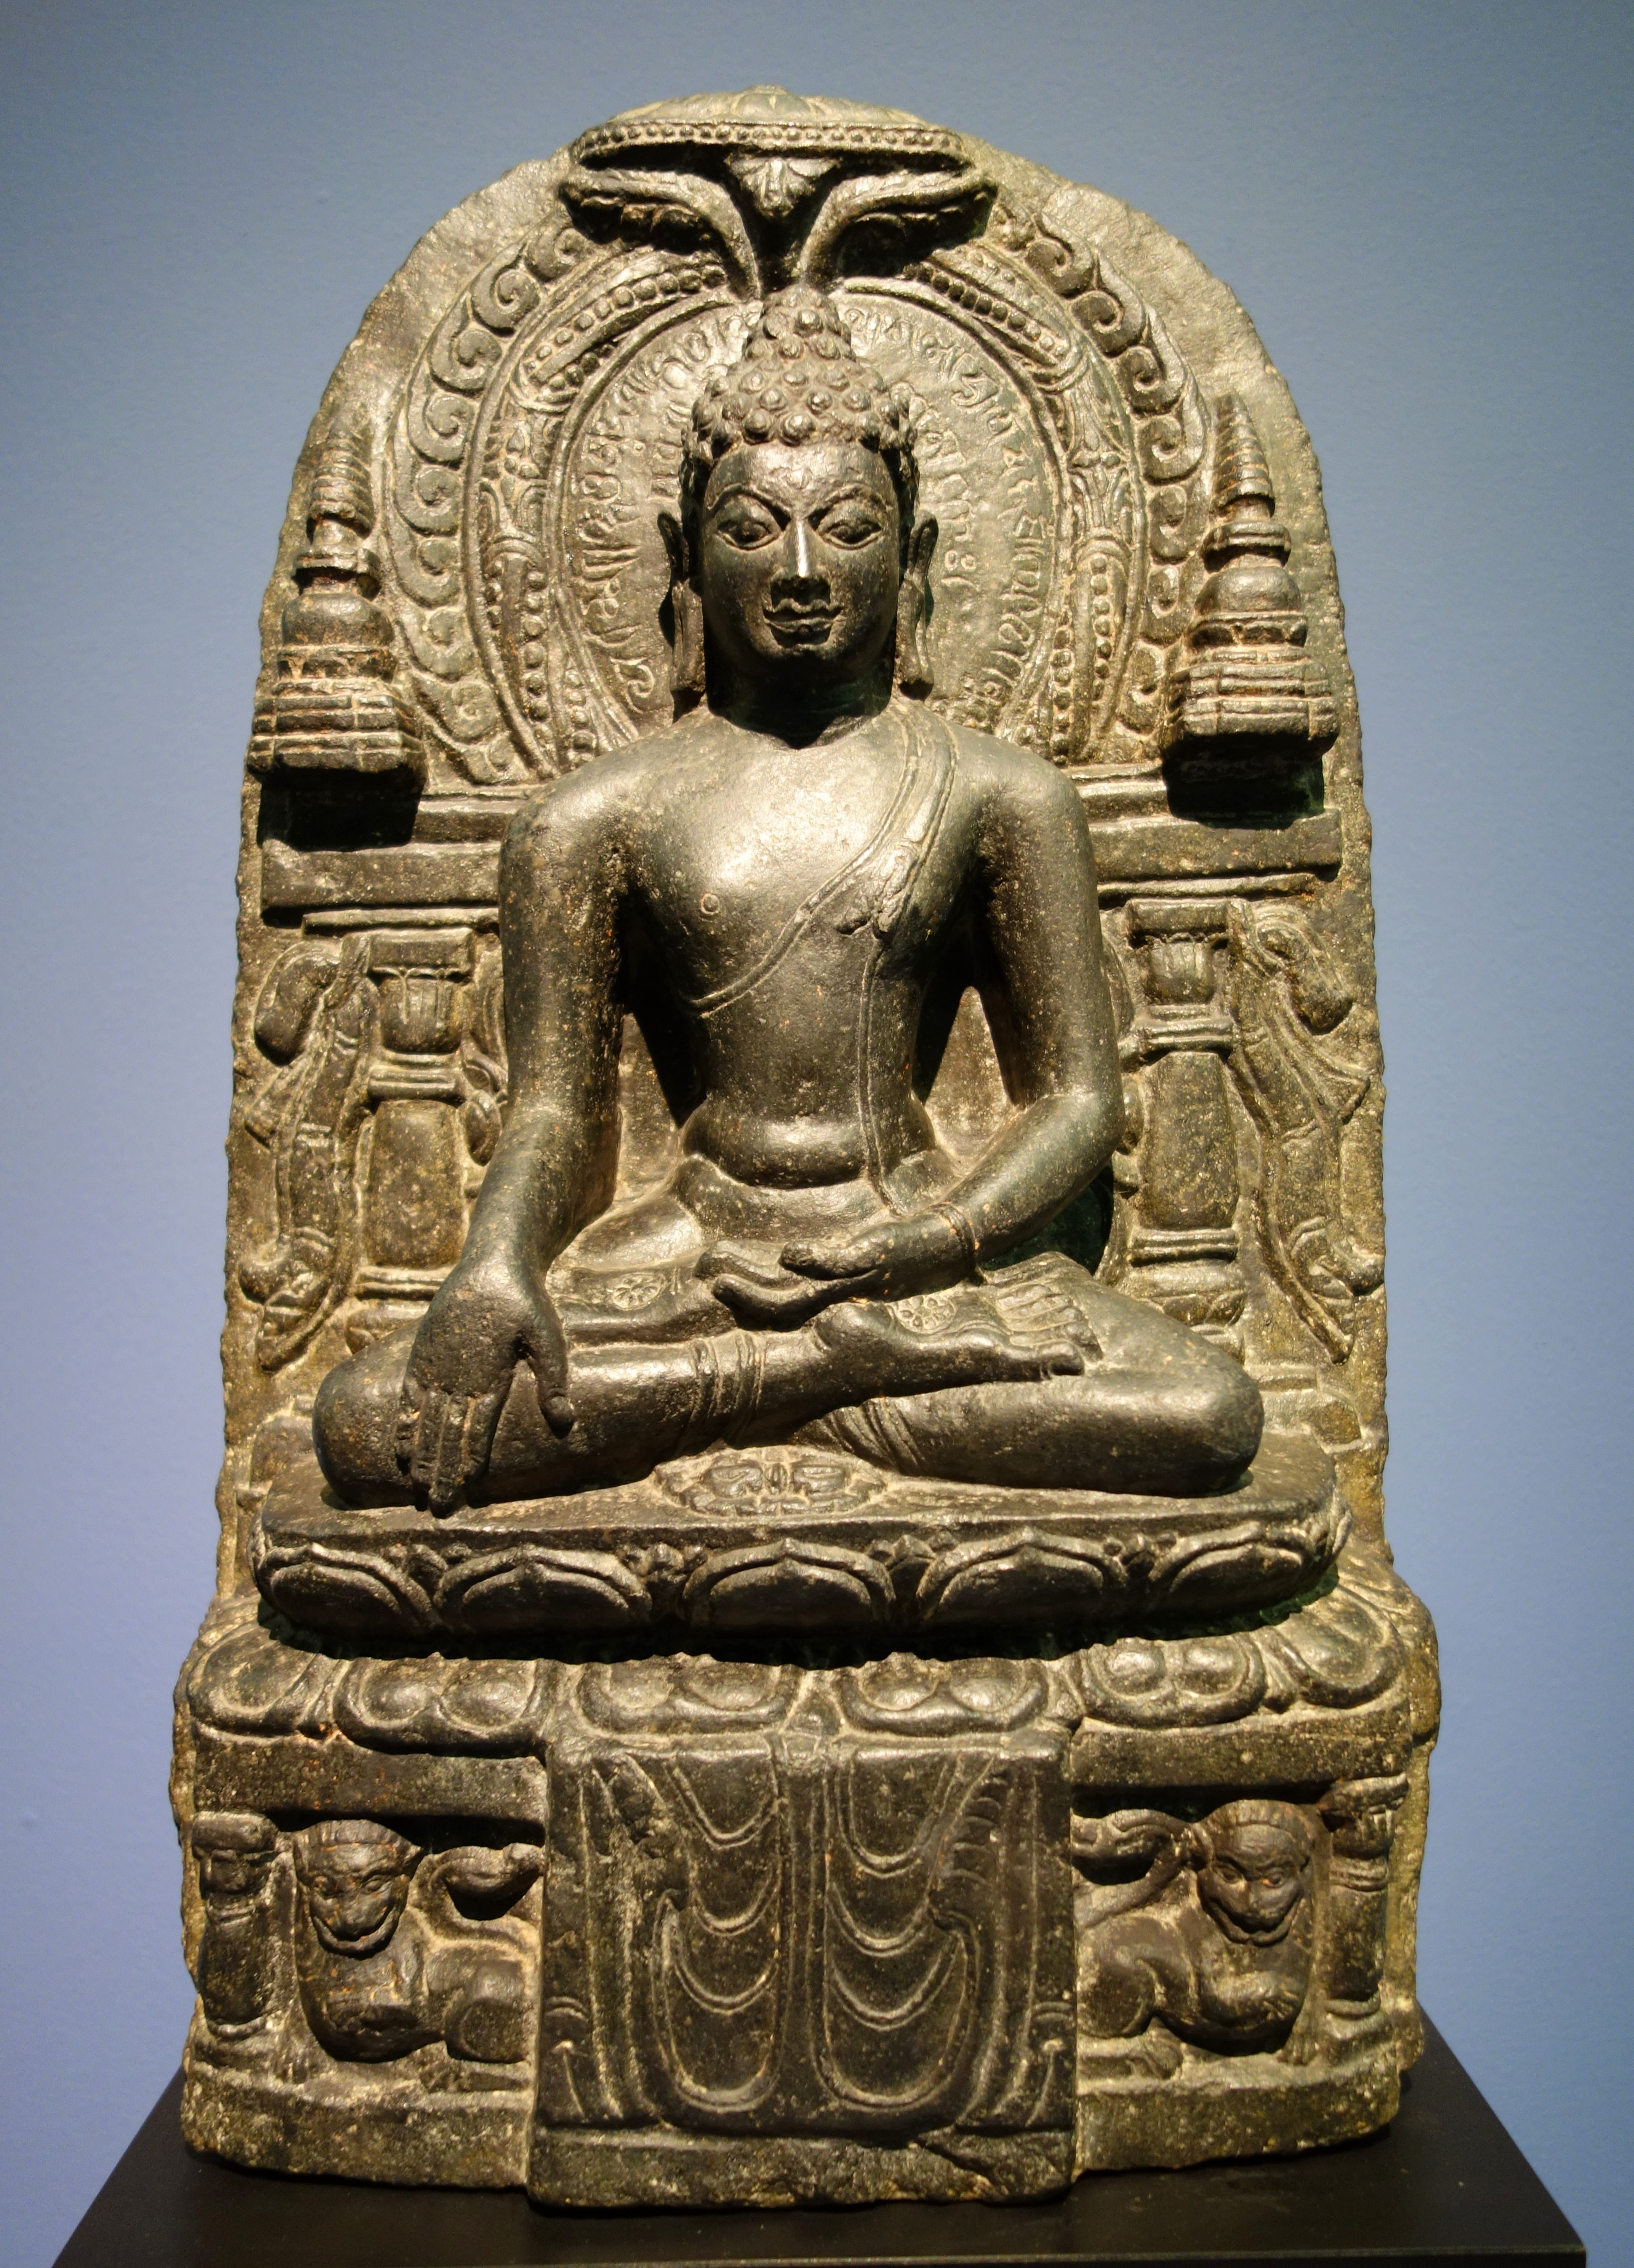 Birth Place Of Buddhism Bihar India: File:Buddha Akshobya Stele, India, Possibly Bihar, 9th